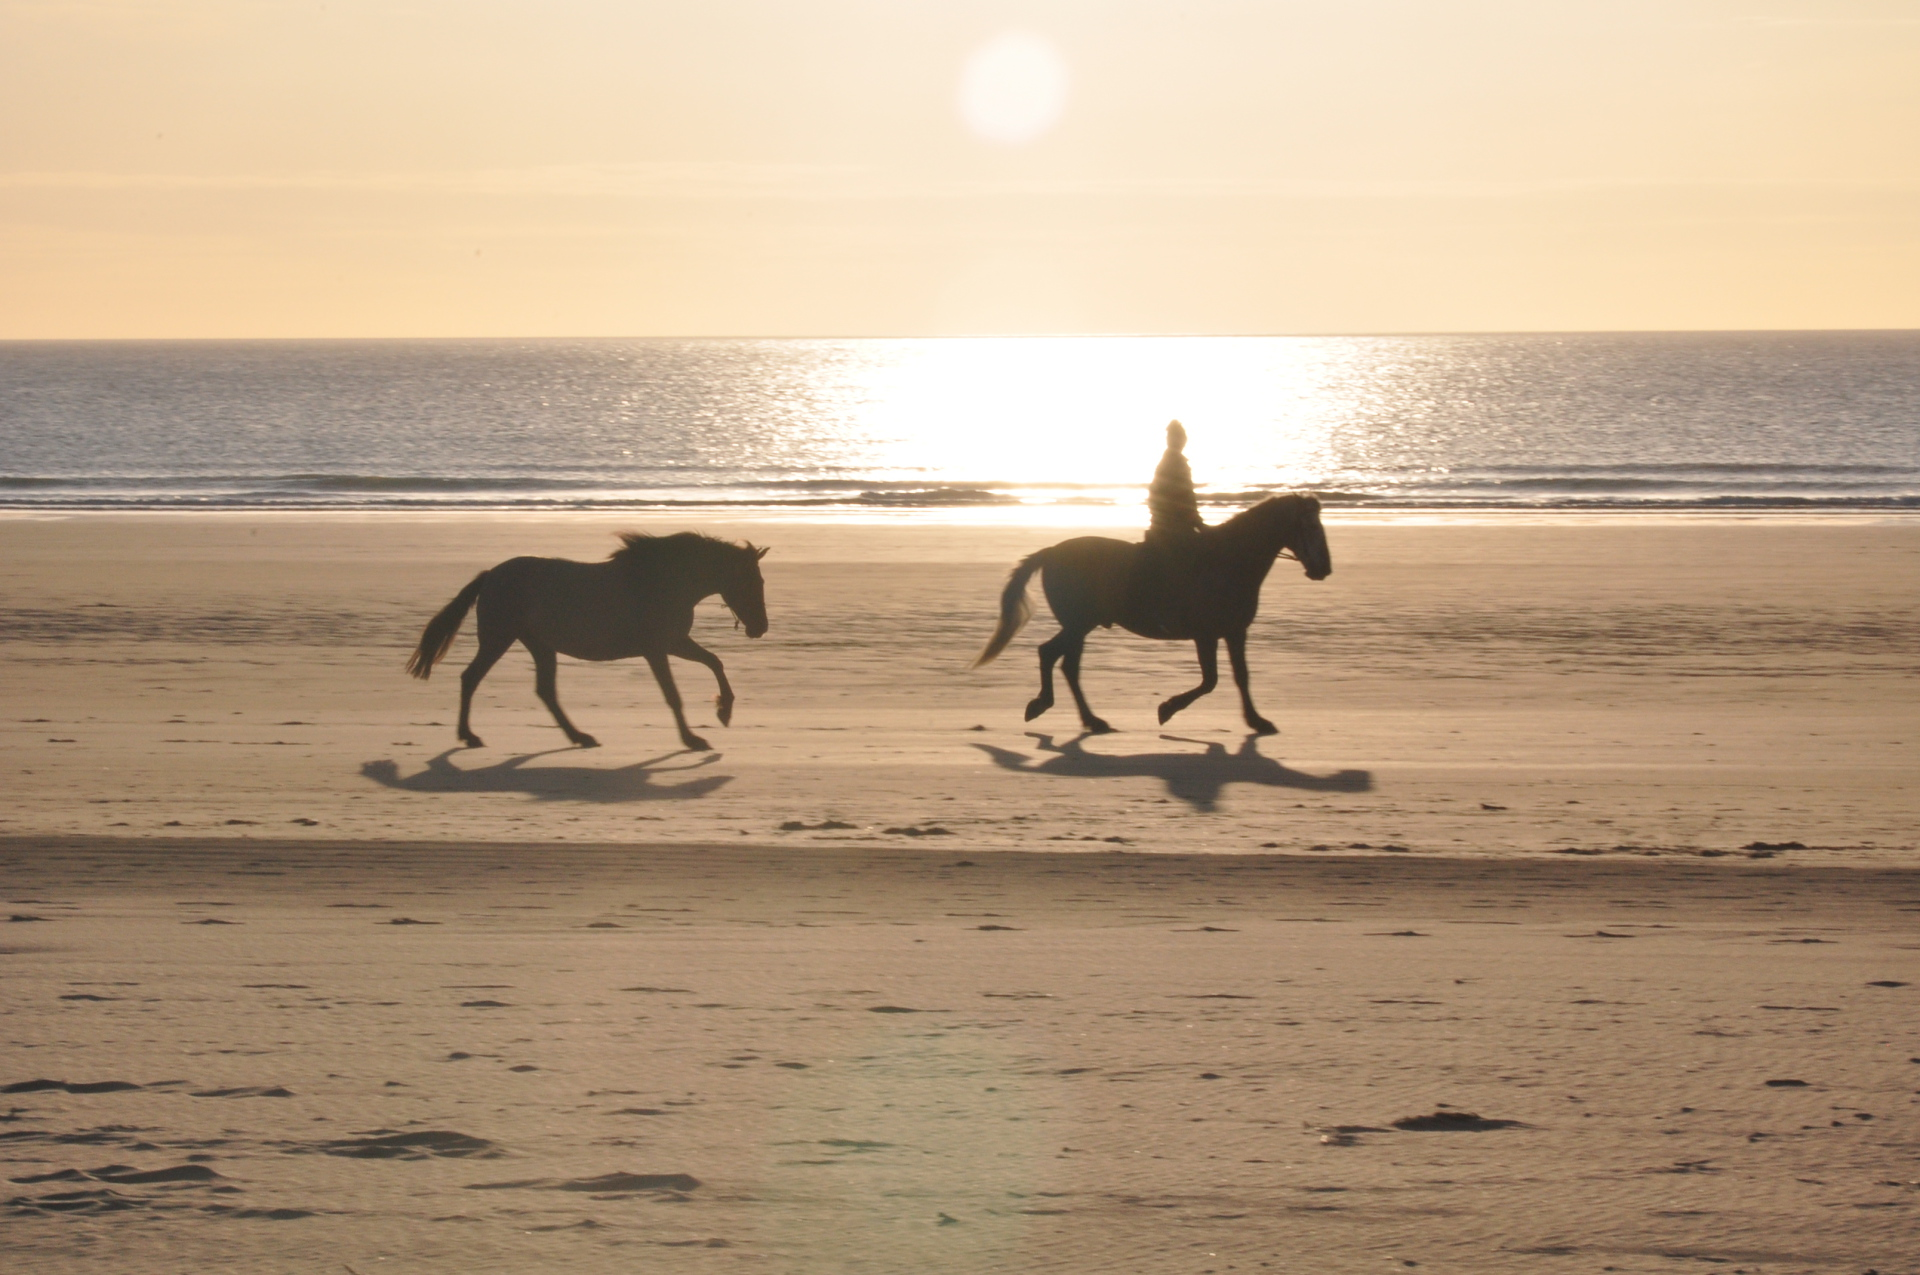 horse riding on beach cornwall gwithian sea sun set surf